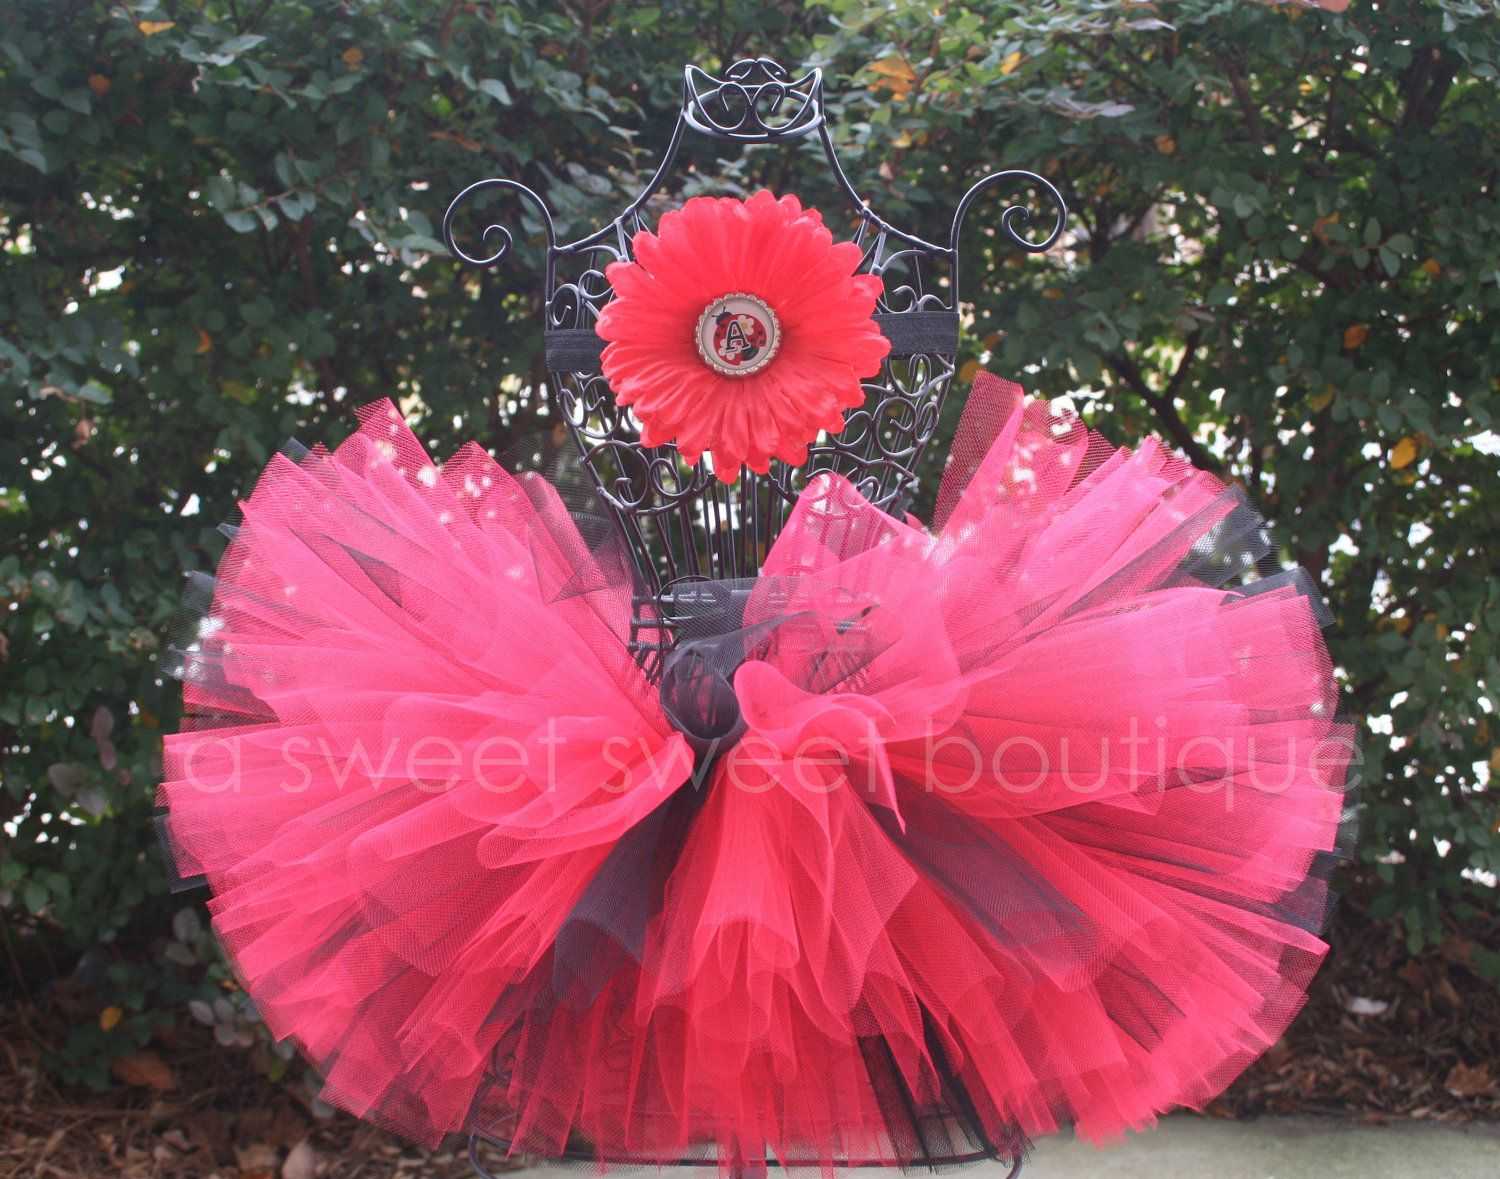 Ladybug Birthday Party Theme Couture Tutu With Matching Flower Headband. $30.00, via Etsy. I can so make this!!!